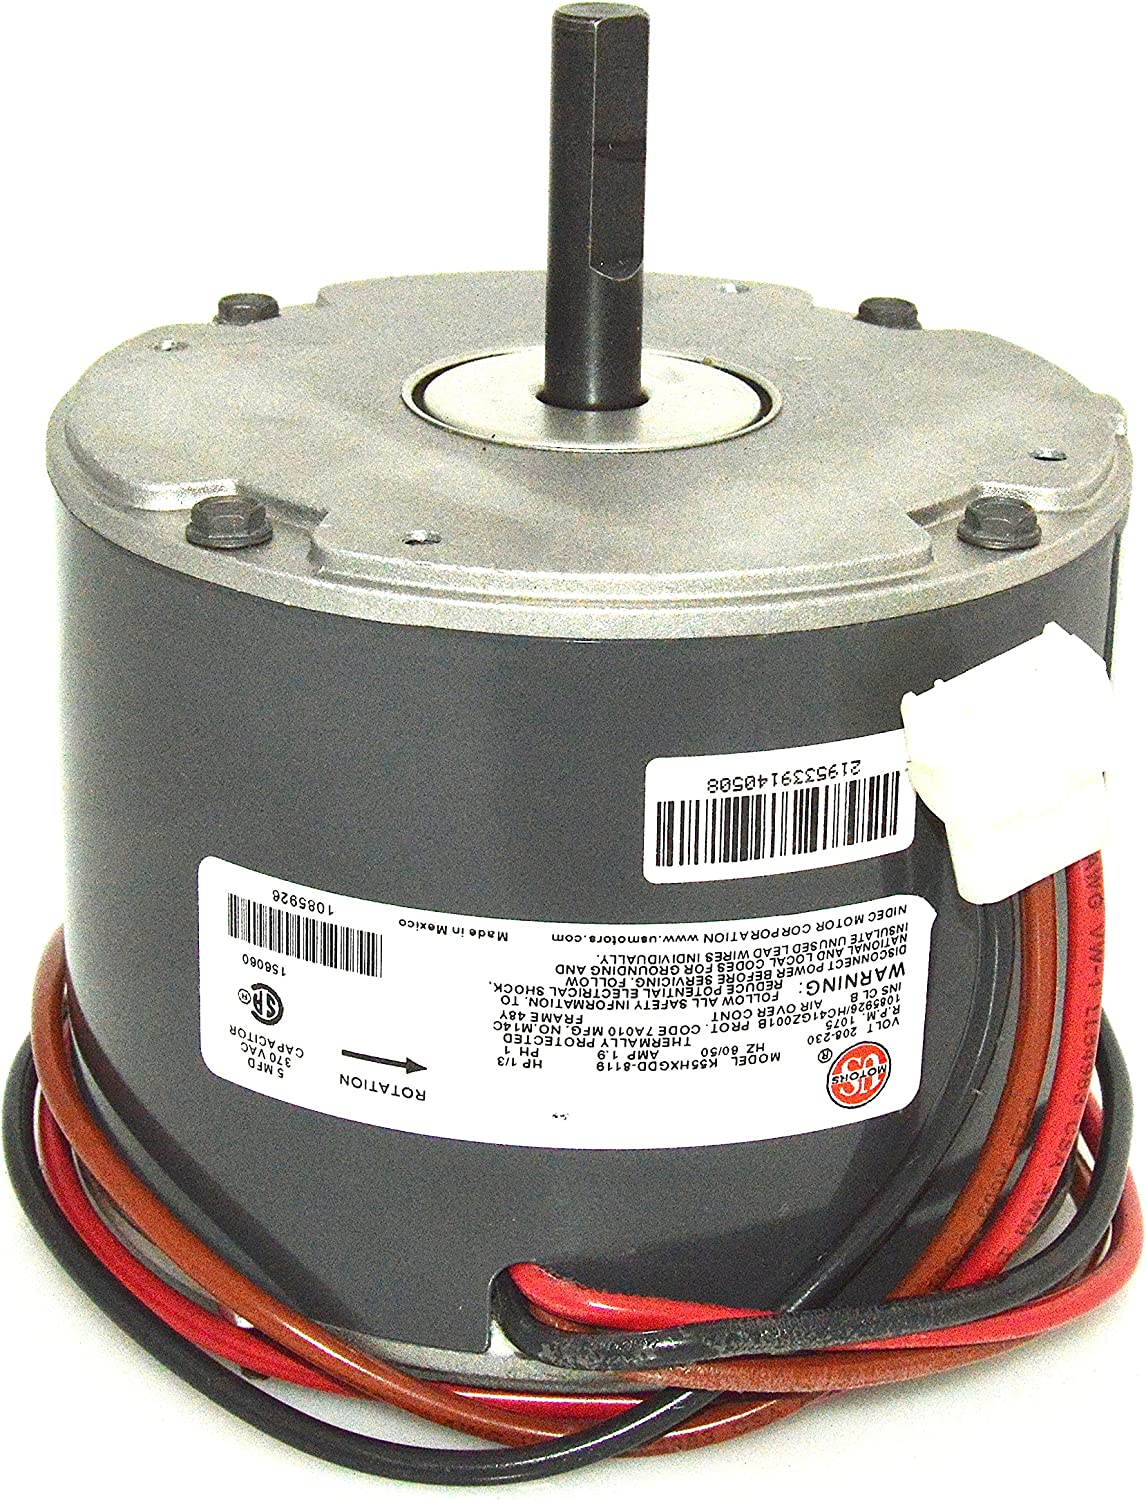 NEW 1//3 HP  US MOTORS EMERSON K55HXPVK-1709 FAN MOTOR 825 RPM 208//230V